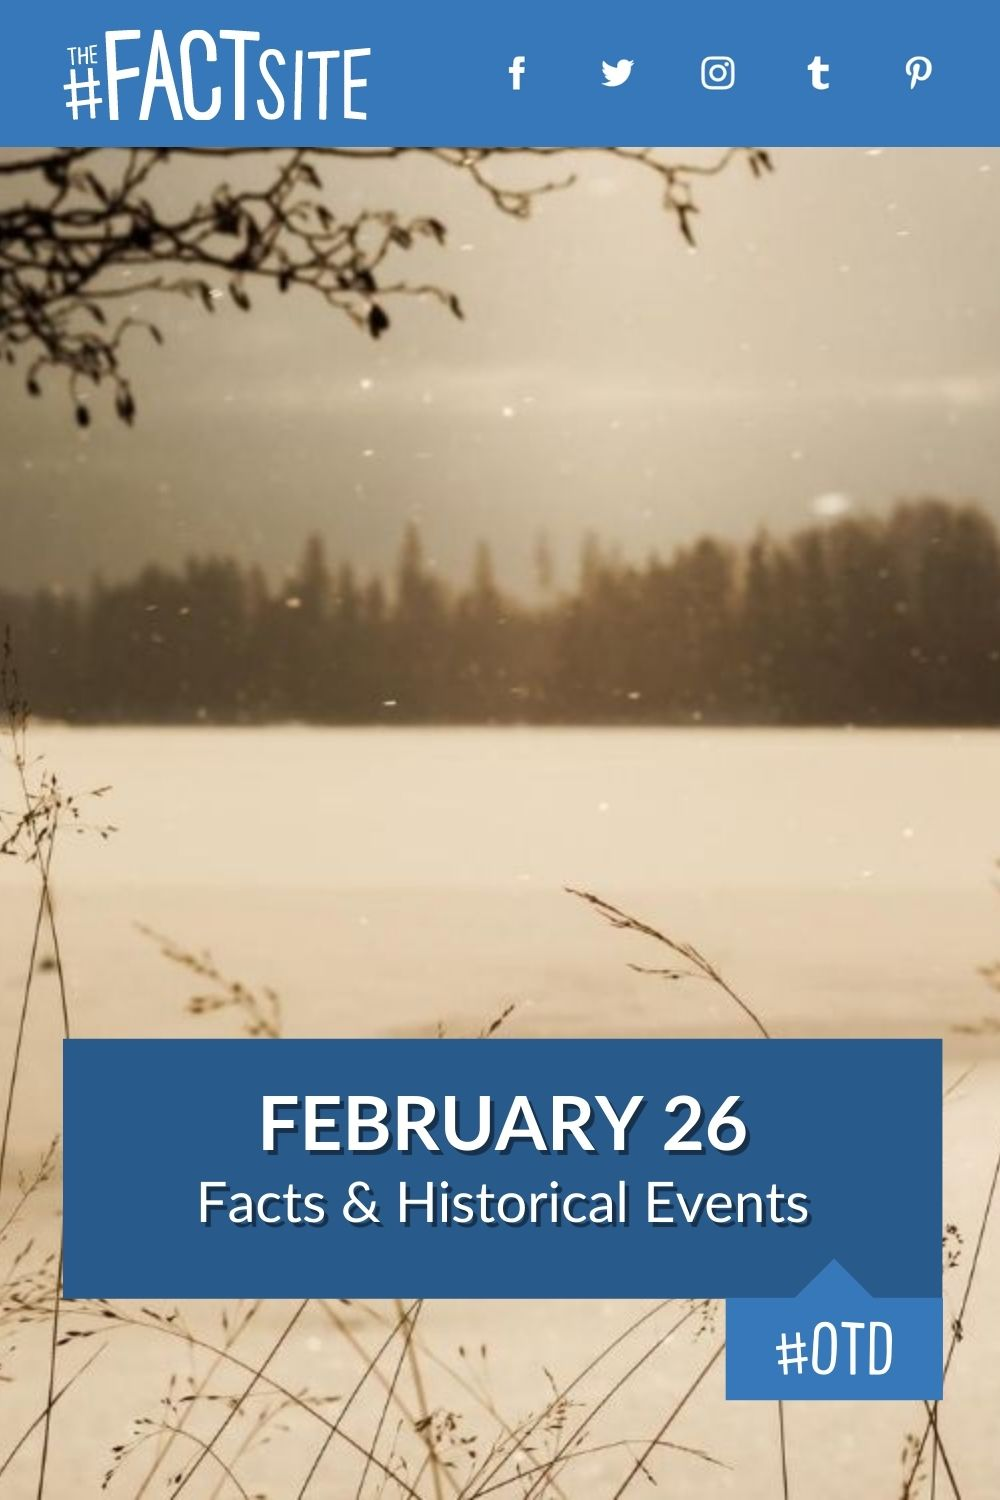 Facts & Historic Events That Happened on February 26